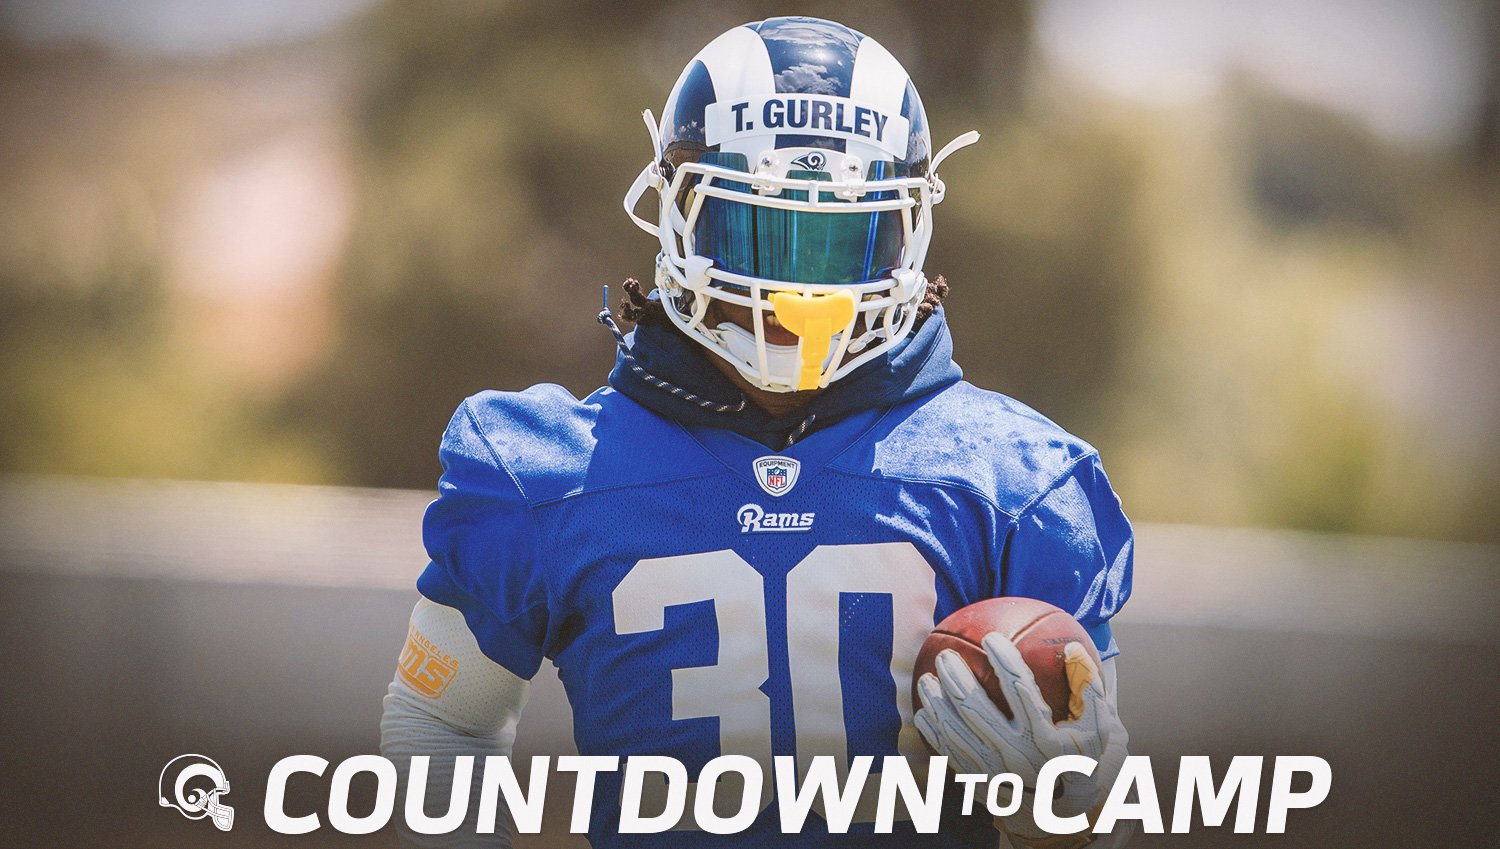 Los Angeles Rams On Twitter Countdown To Camp Gurley Leads The Way At Running Back Read Https T Co 5ksnqdfyah